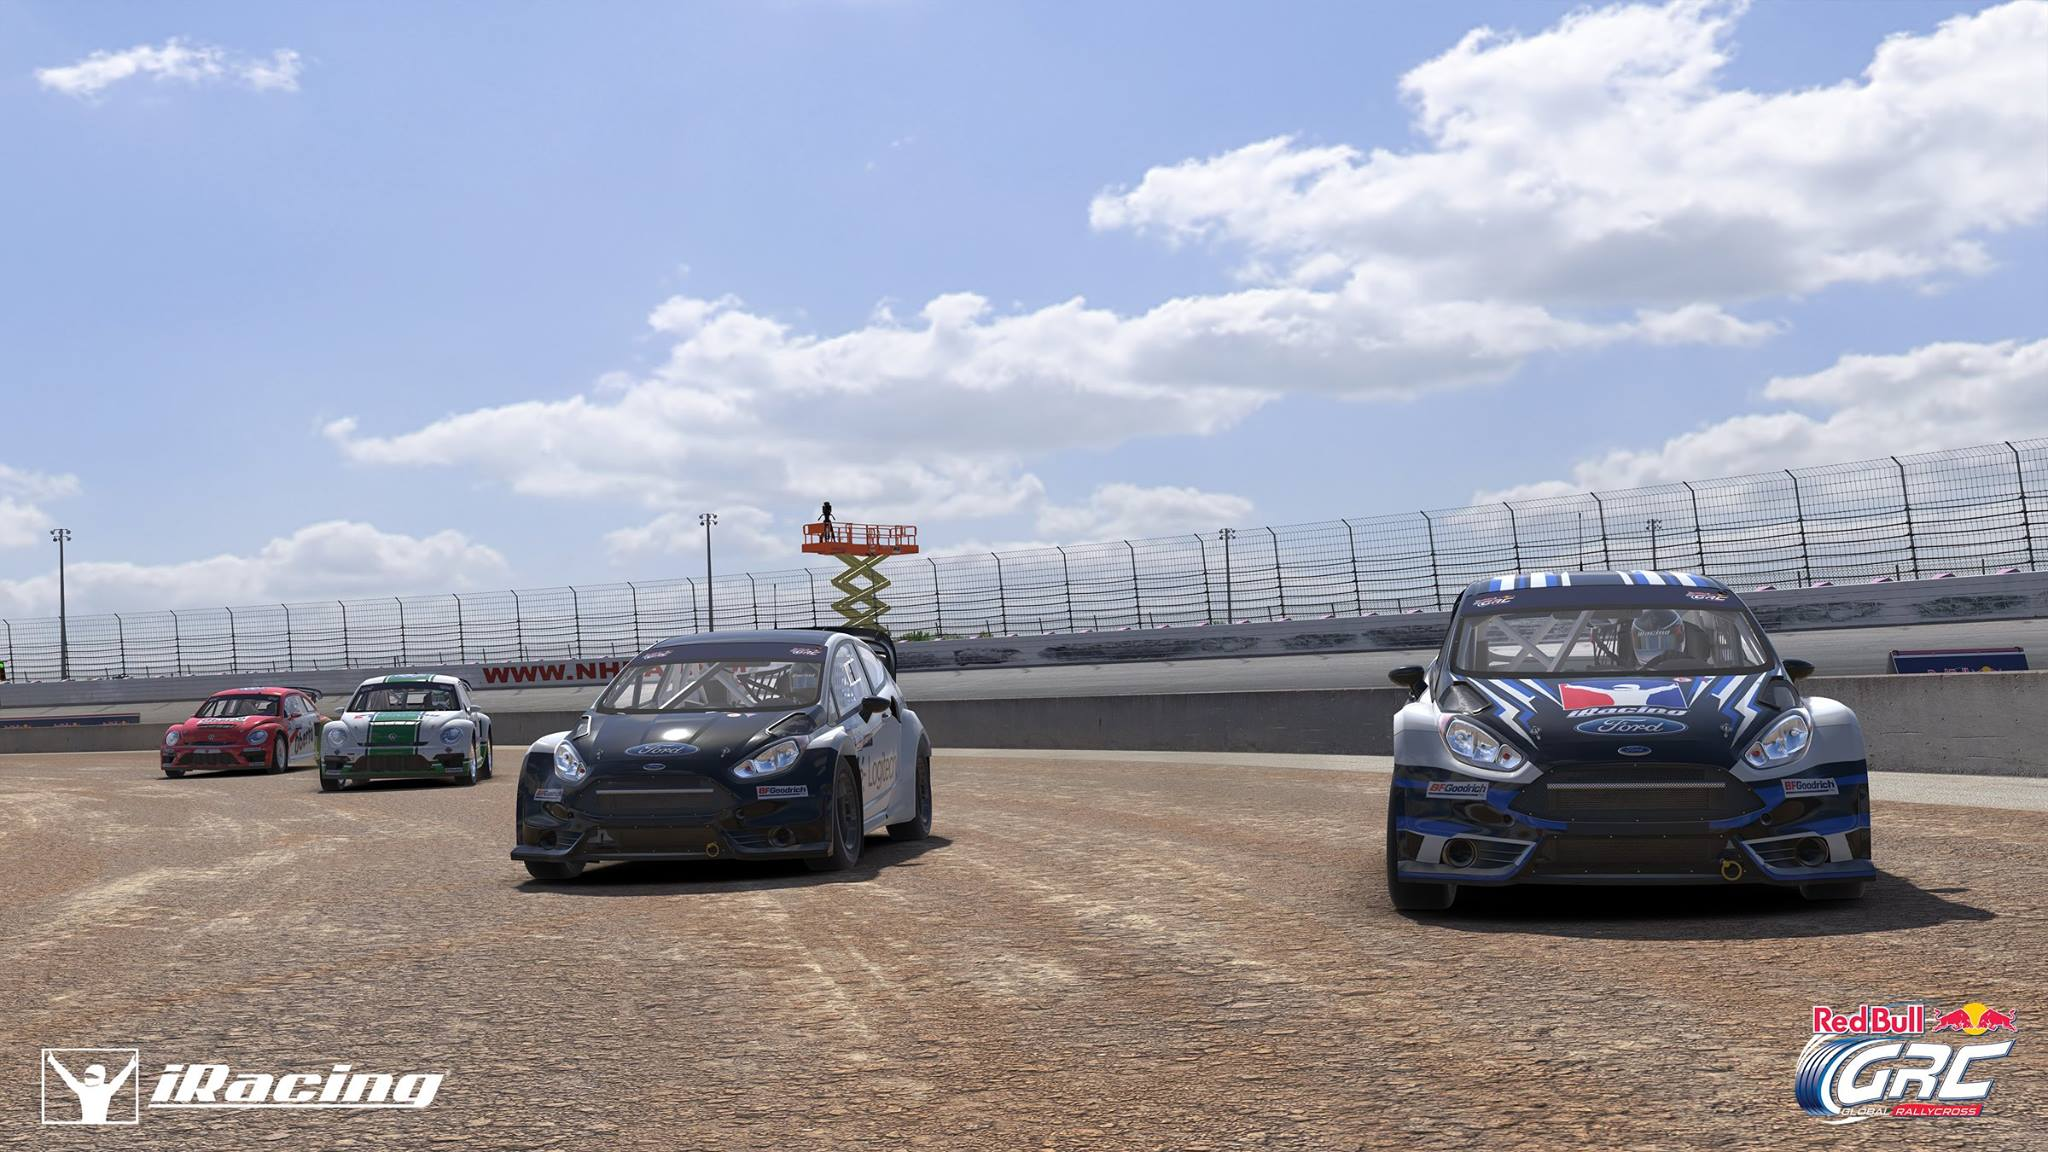 New iRacing Update Brings Rallycross, Animated Pit Crews & More